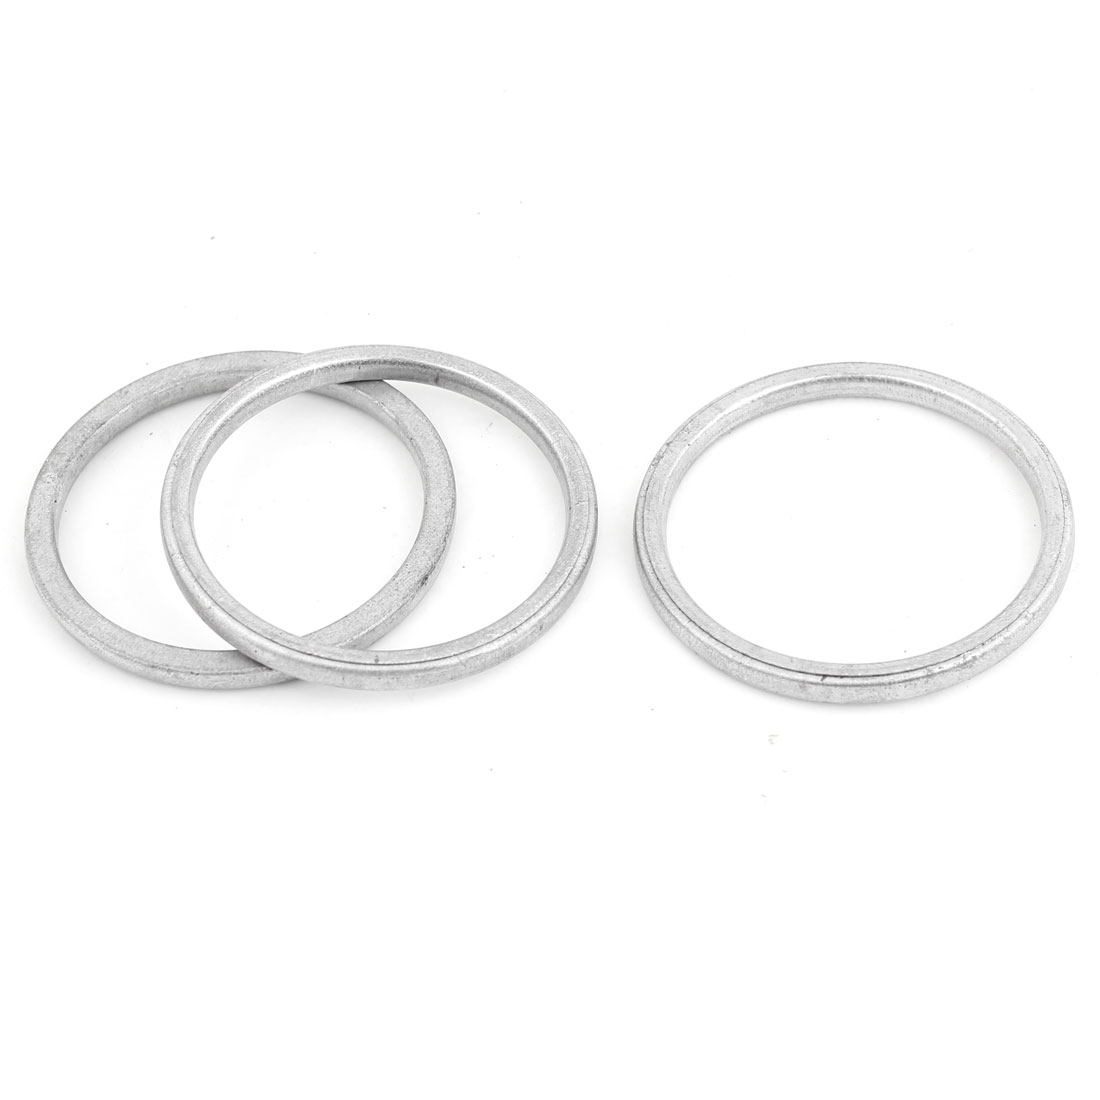 3 Pcs Vehicle Aluminum 50mm Inside Dia Engine Silencer Exhaust Gasket Assembly